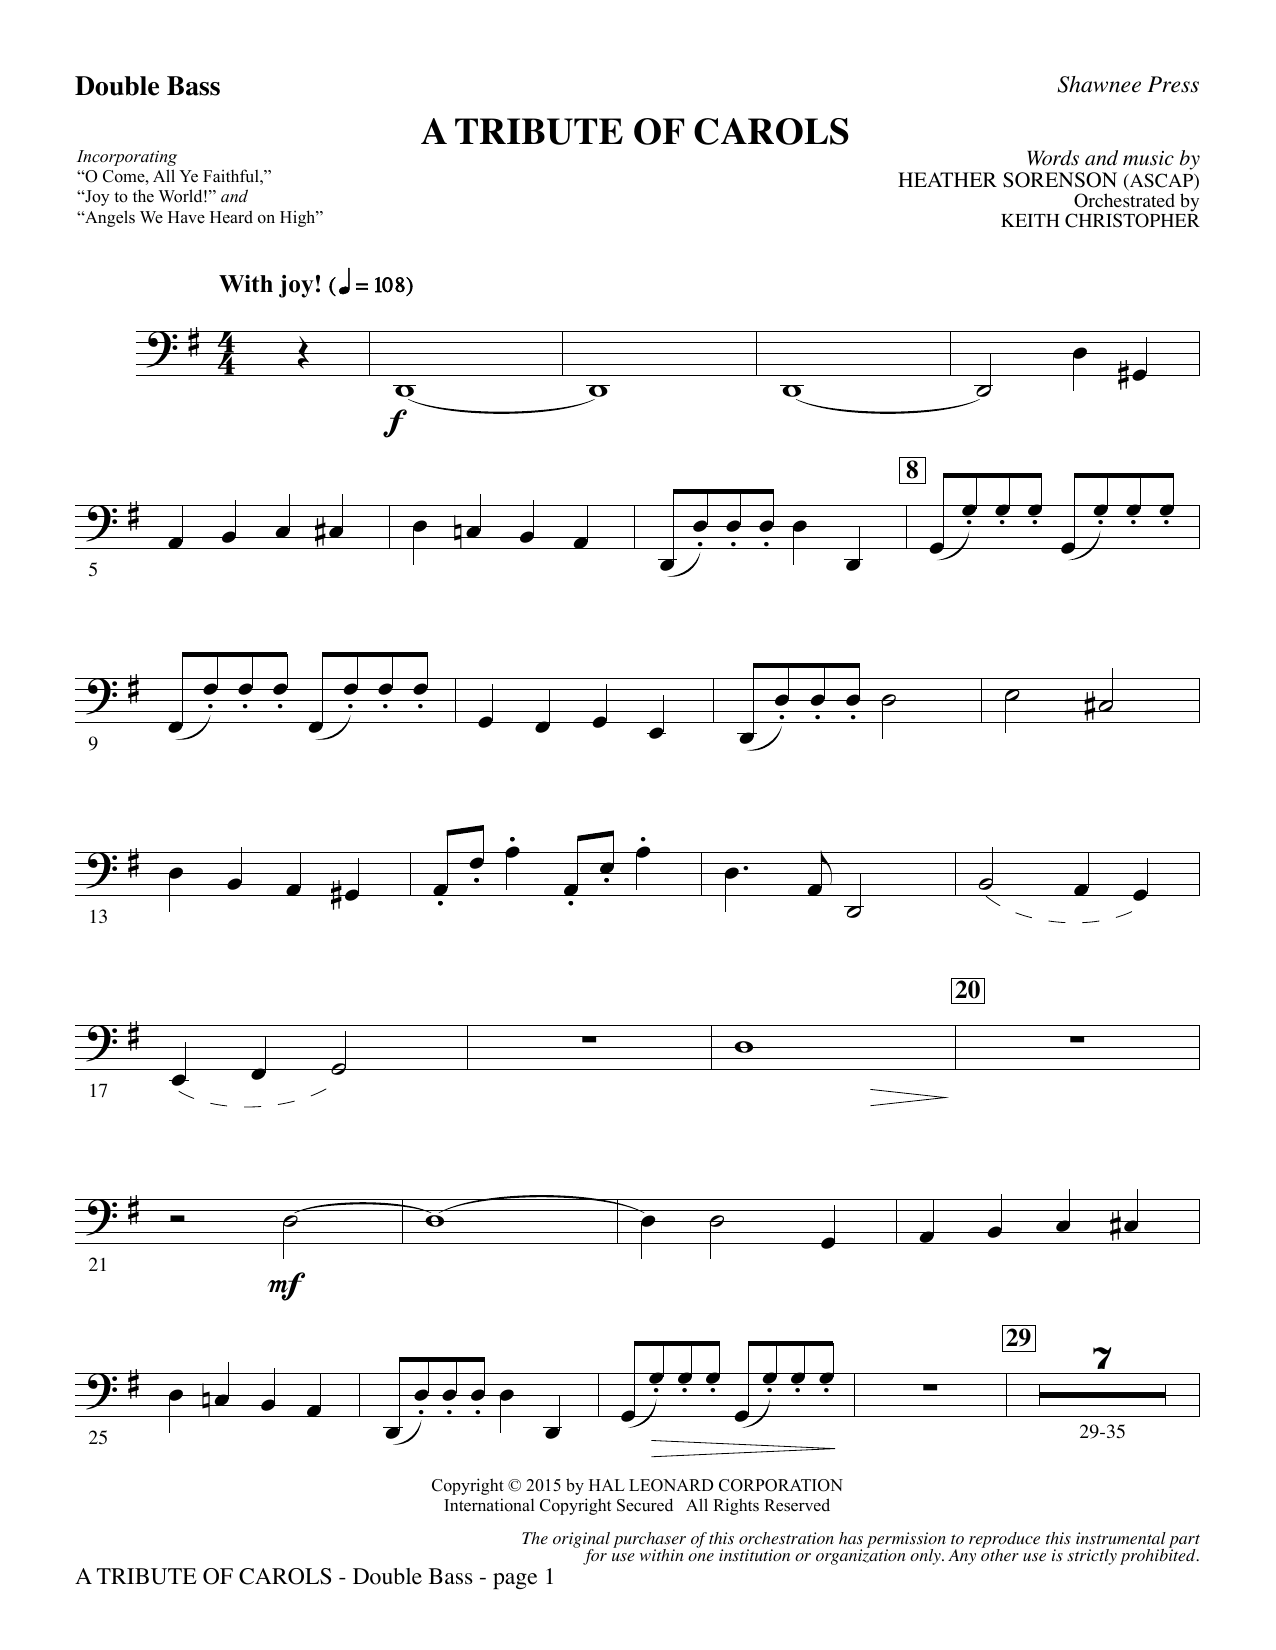 Heather Sorenson A Tribute of Carols - Double Bass sheet music notes and chords. Download Printable PDF.